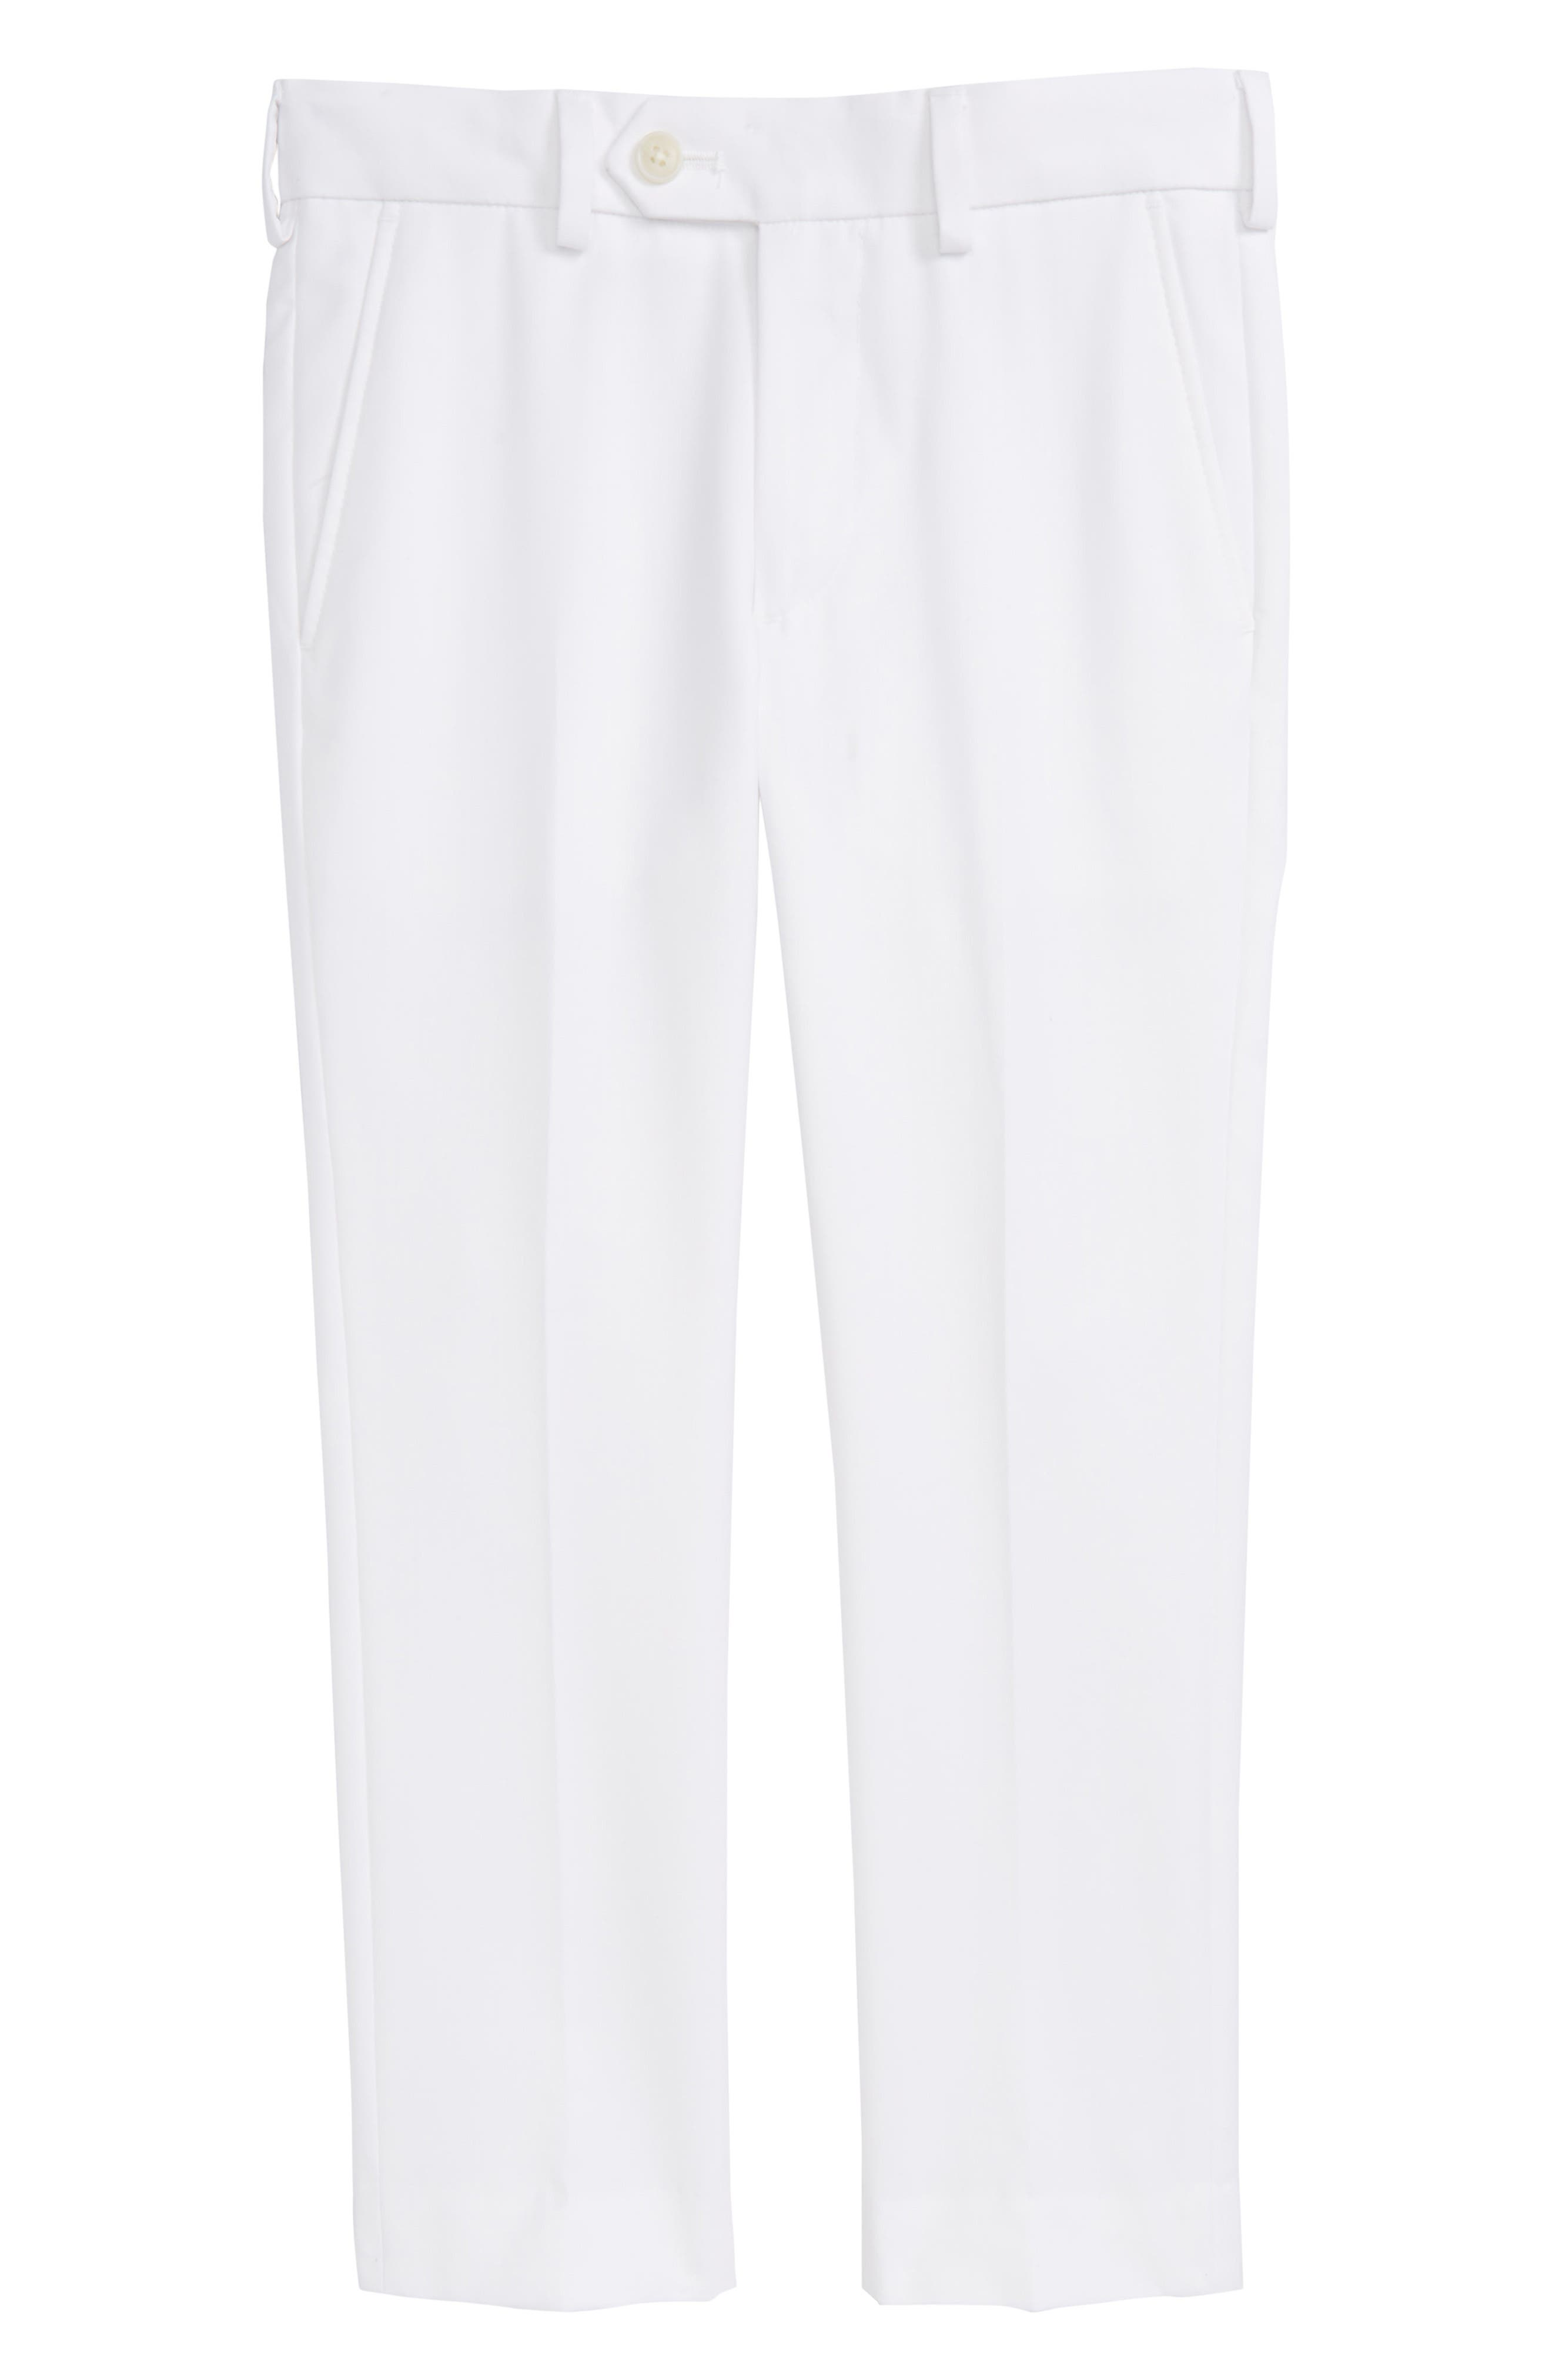 Flat Front Trousers,                             Main thumbnail 1, color,                             100